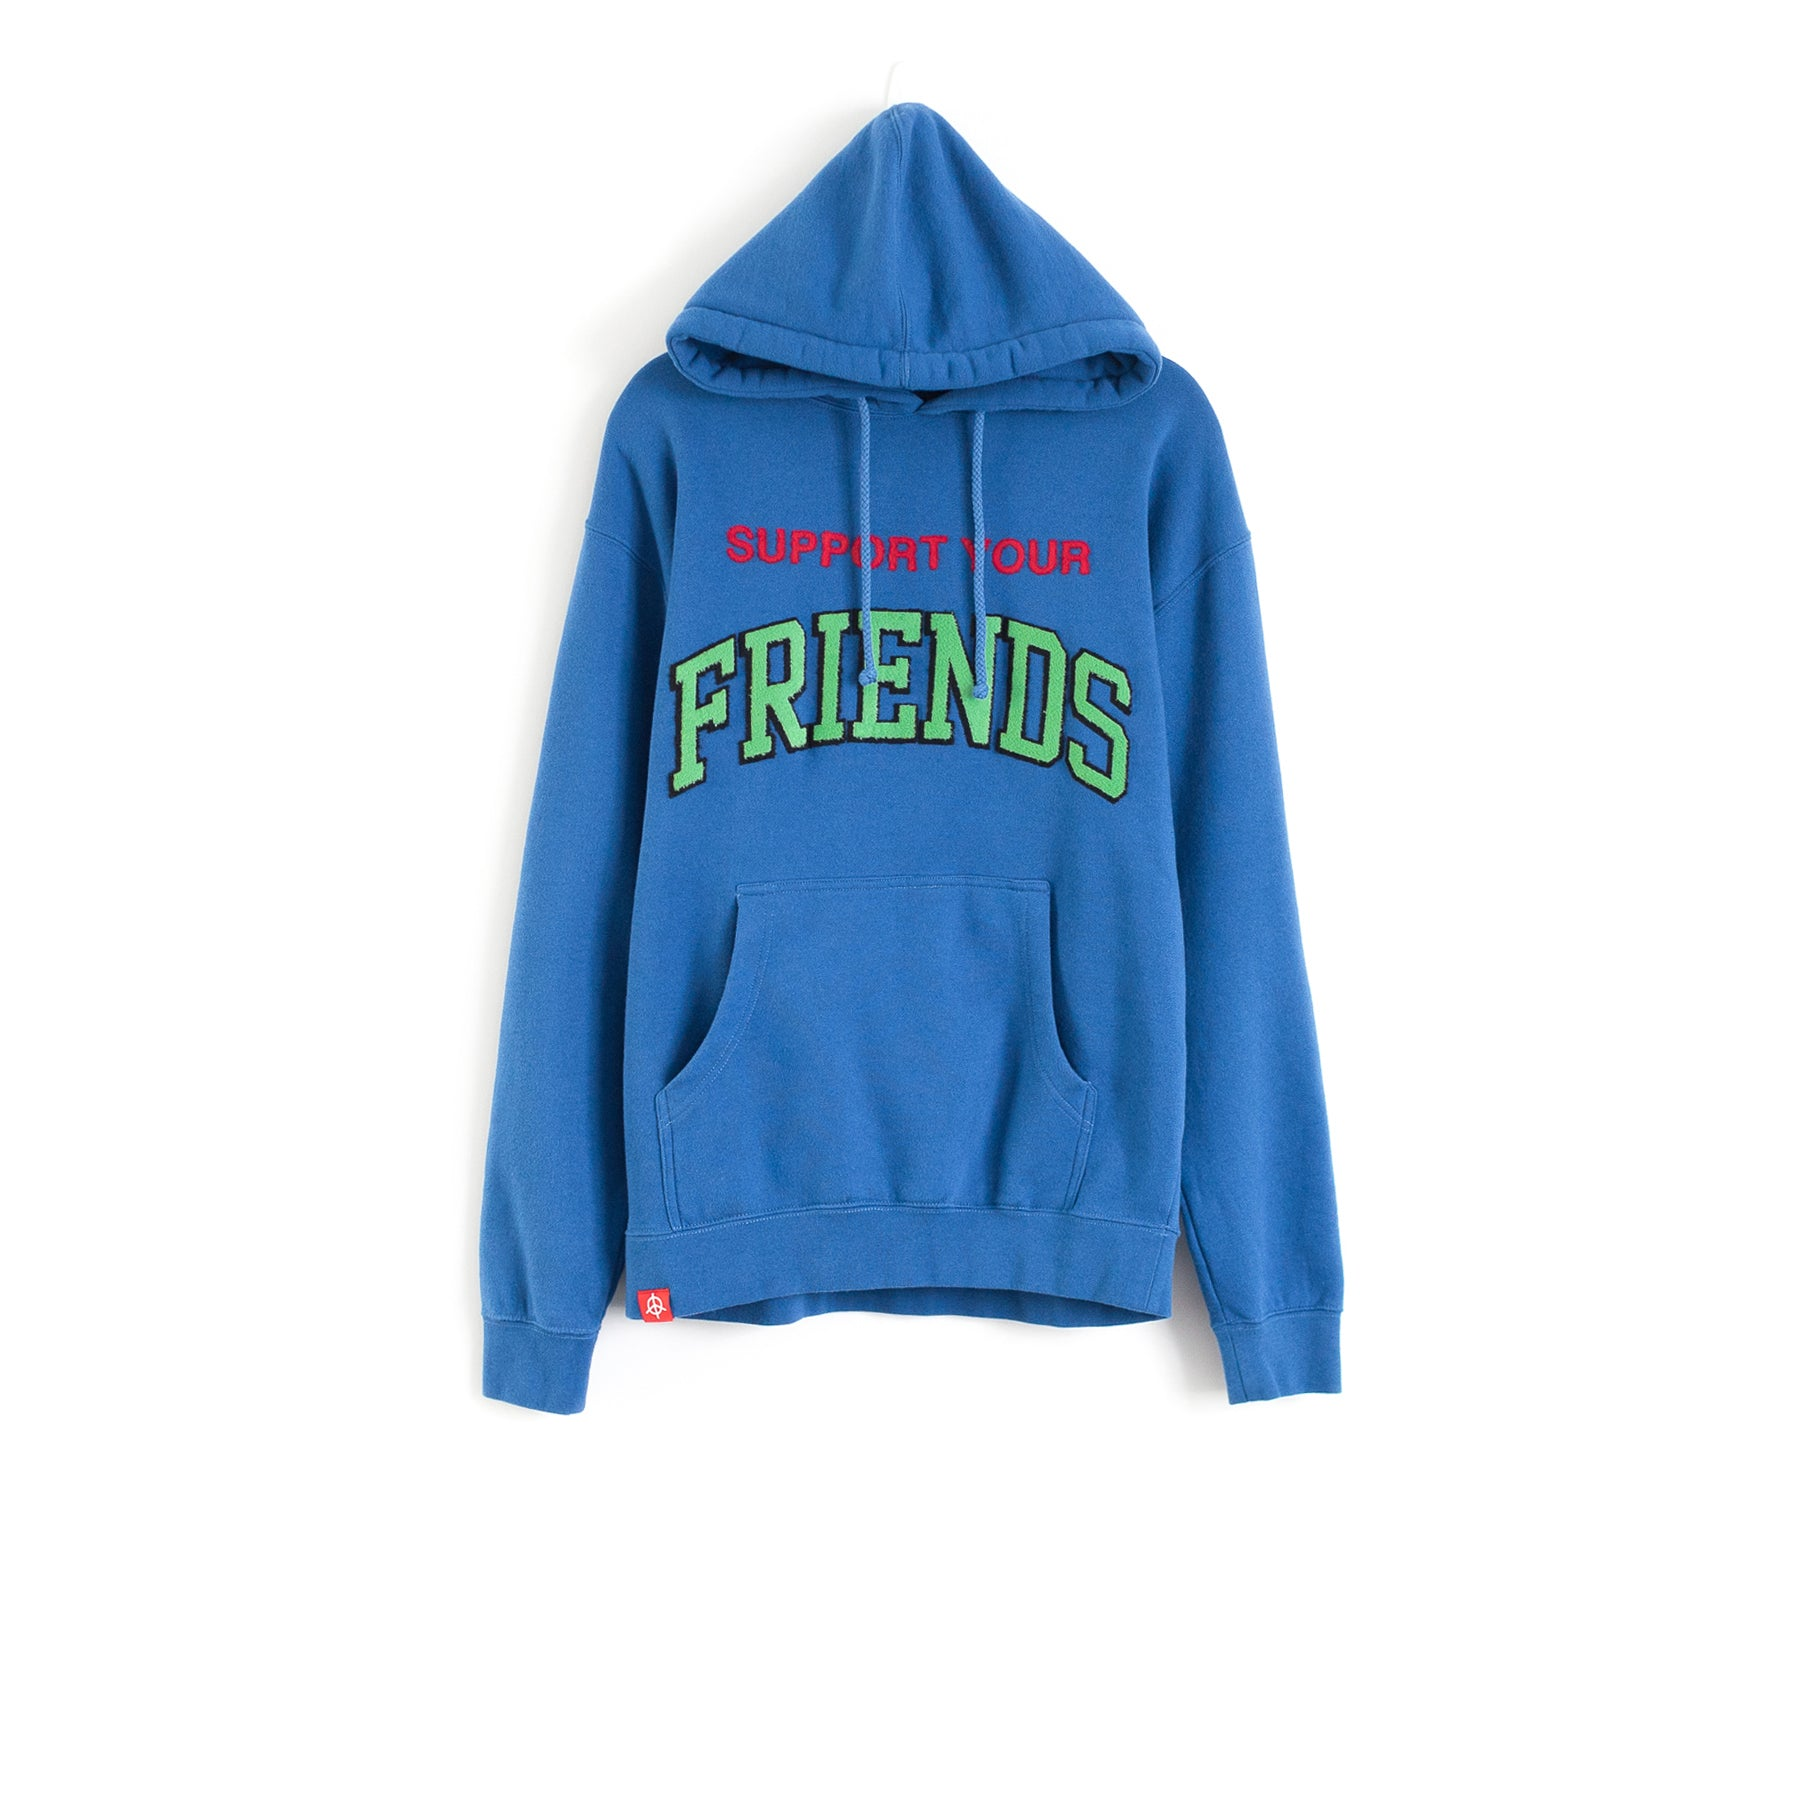 SUPPORT YOUR FRIENDS HOODIE - ROYAL BLUE